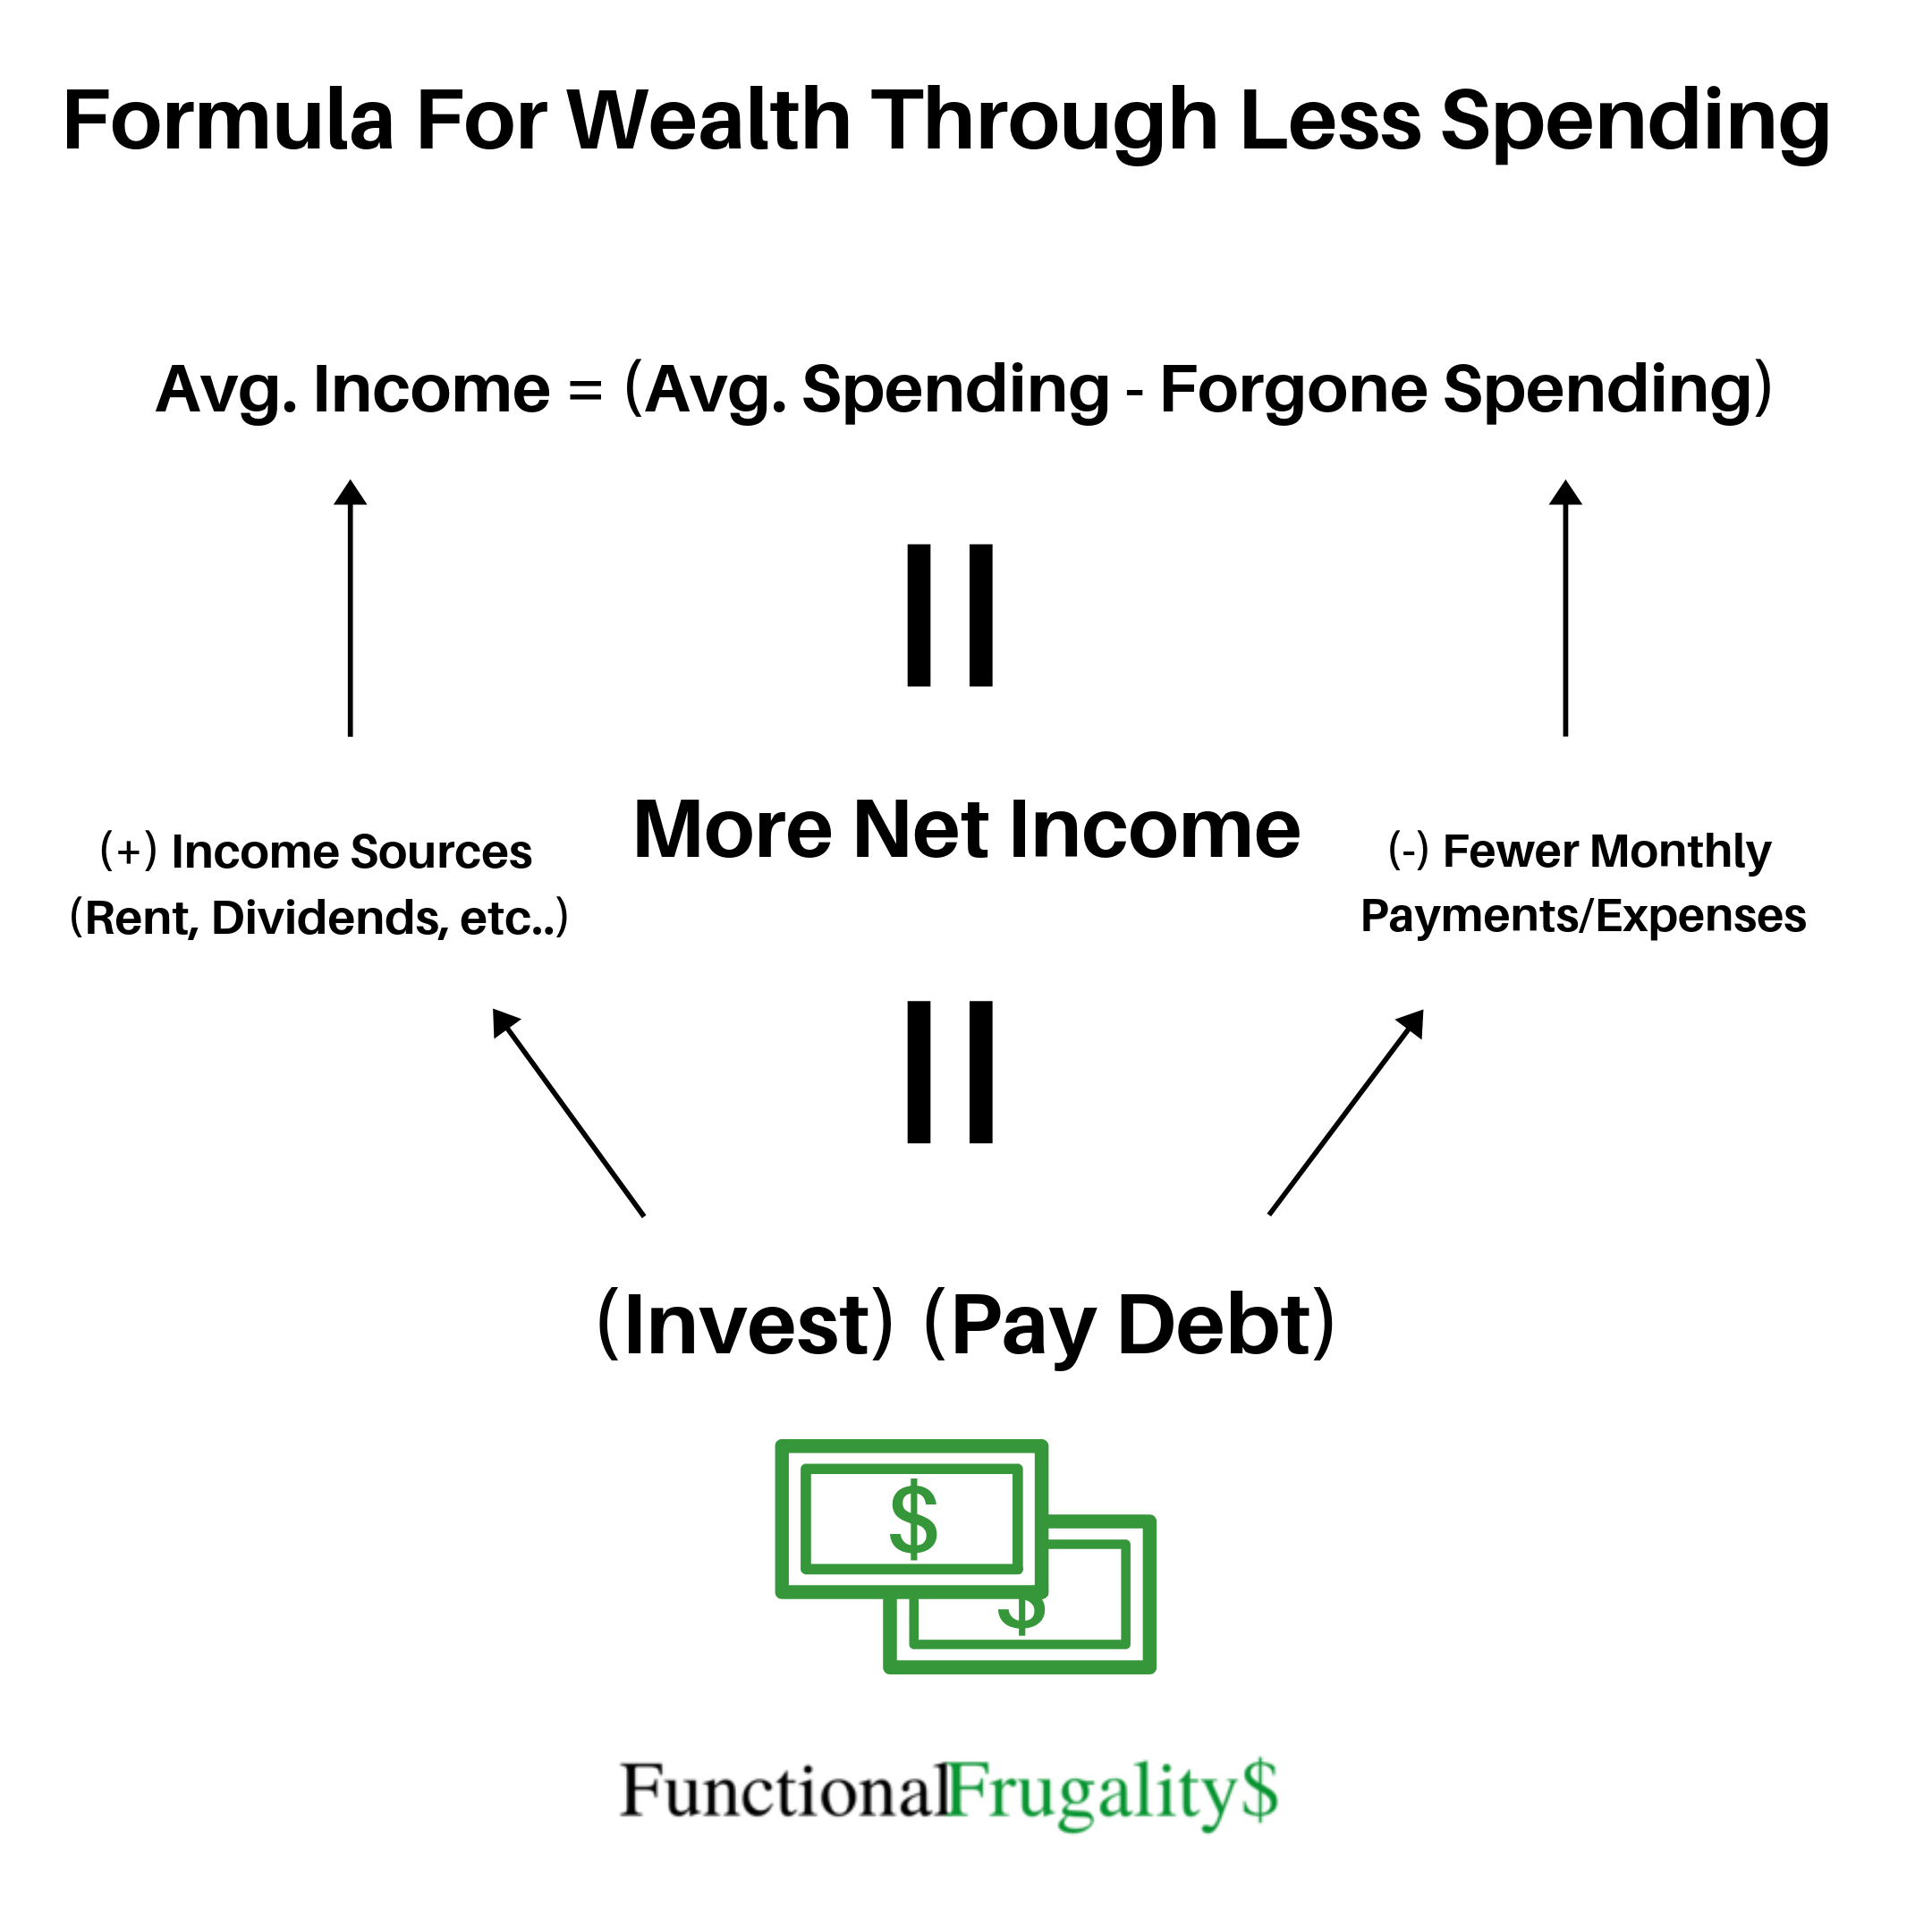 The Impact of Saved Money Investing, Pay debt, What